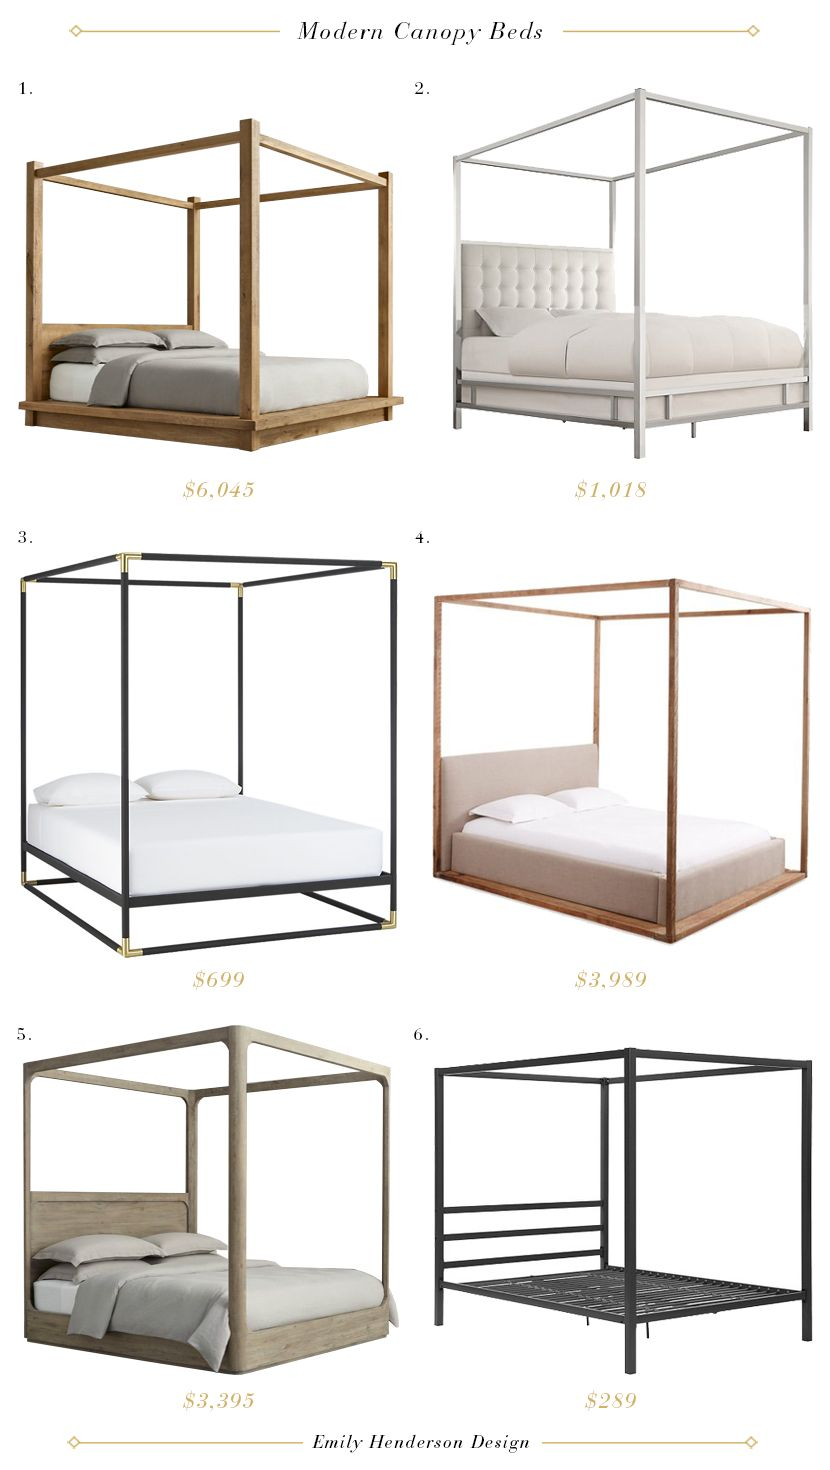 The 32 Beds That I Almost Bought for My Bedroom | Pinterest | Betten ...